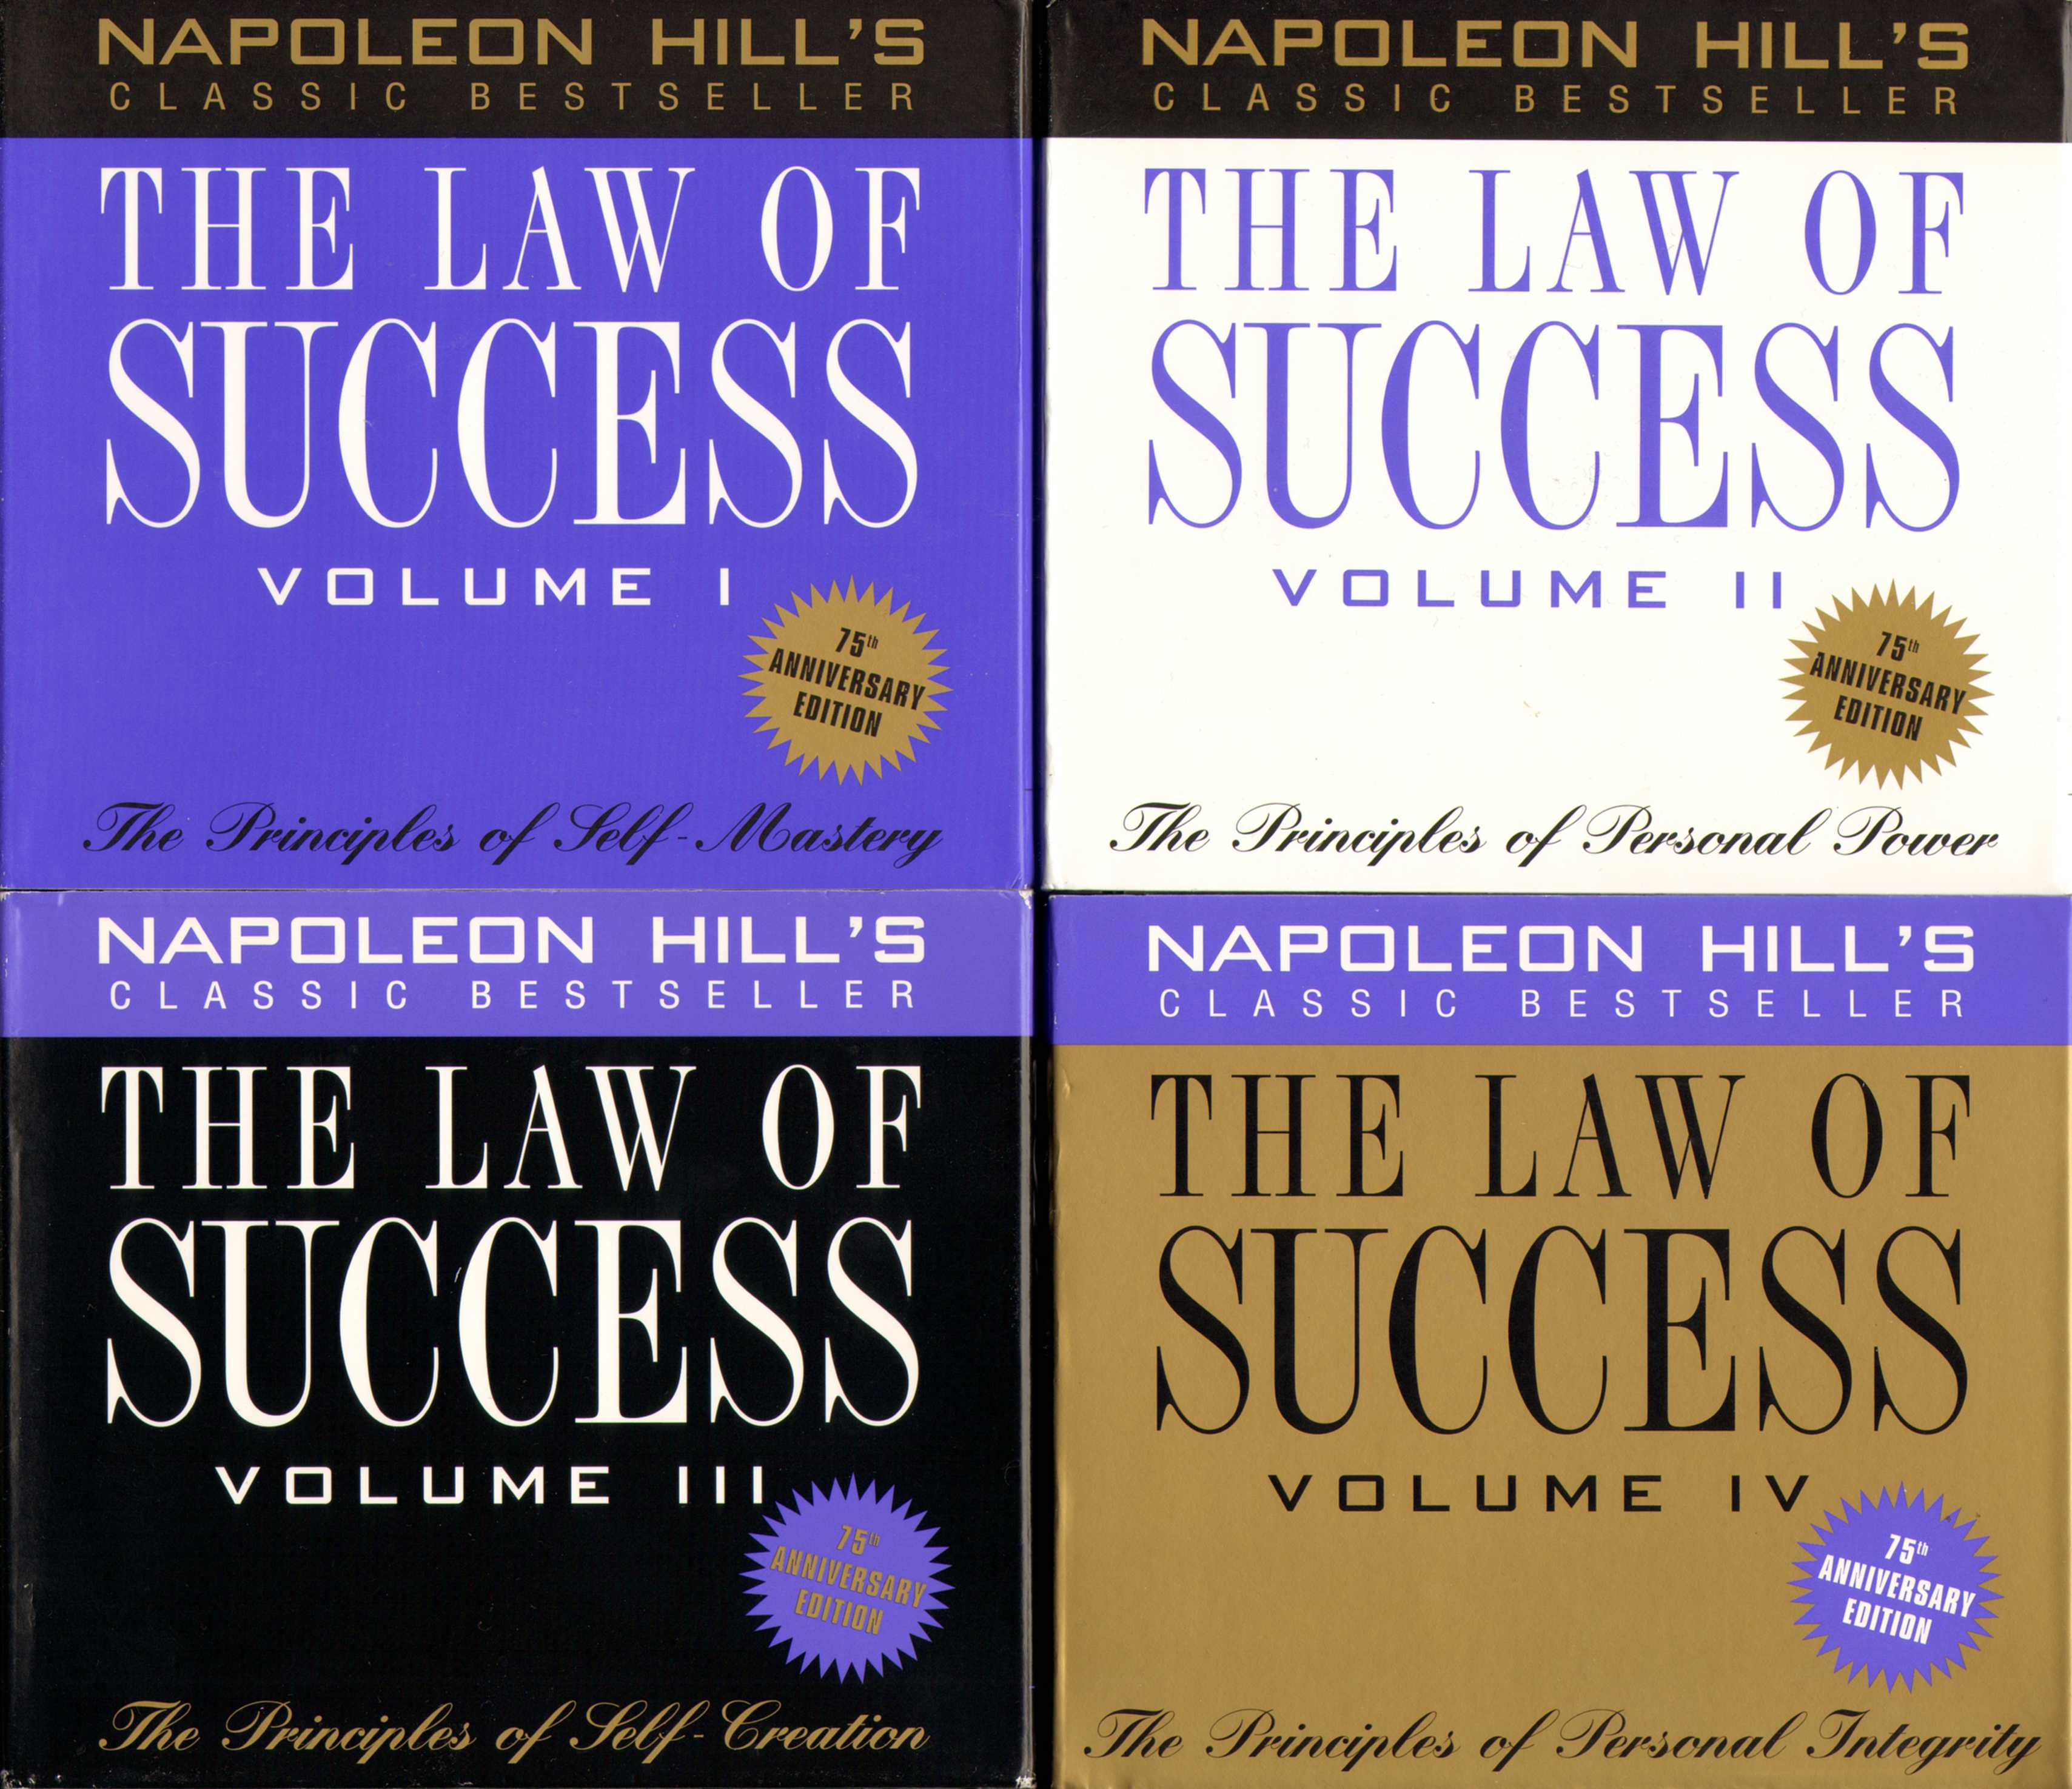 Napoleon_Hill_Law_of_Success.jpg